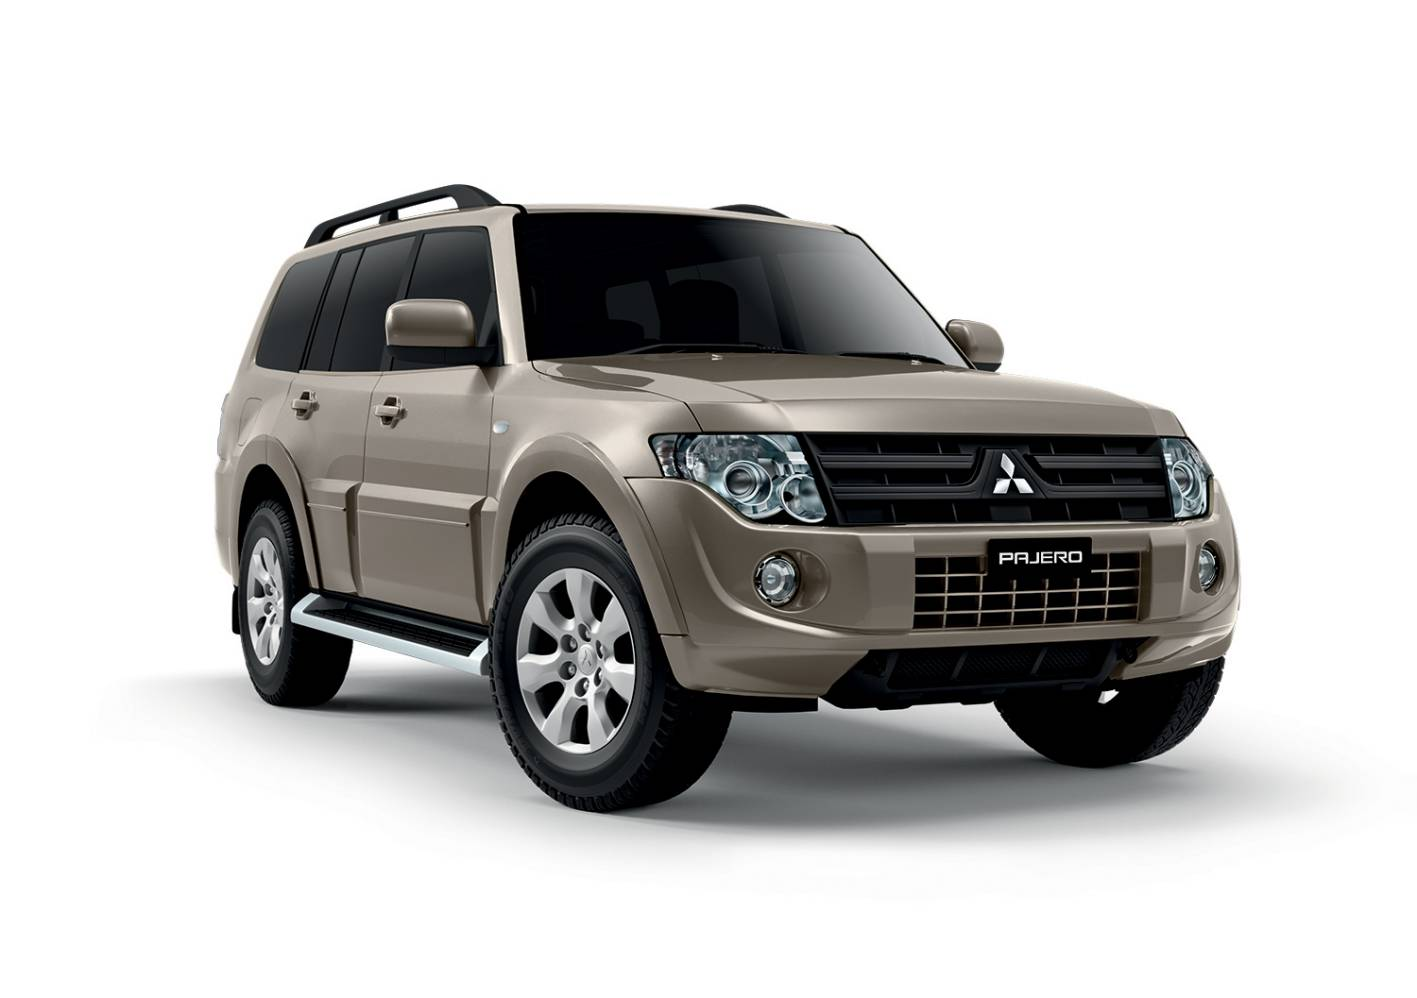 Force cars in india force car prices models reviews photos for Abc motor credit reviews